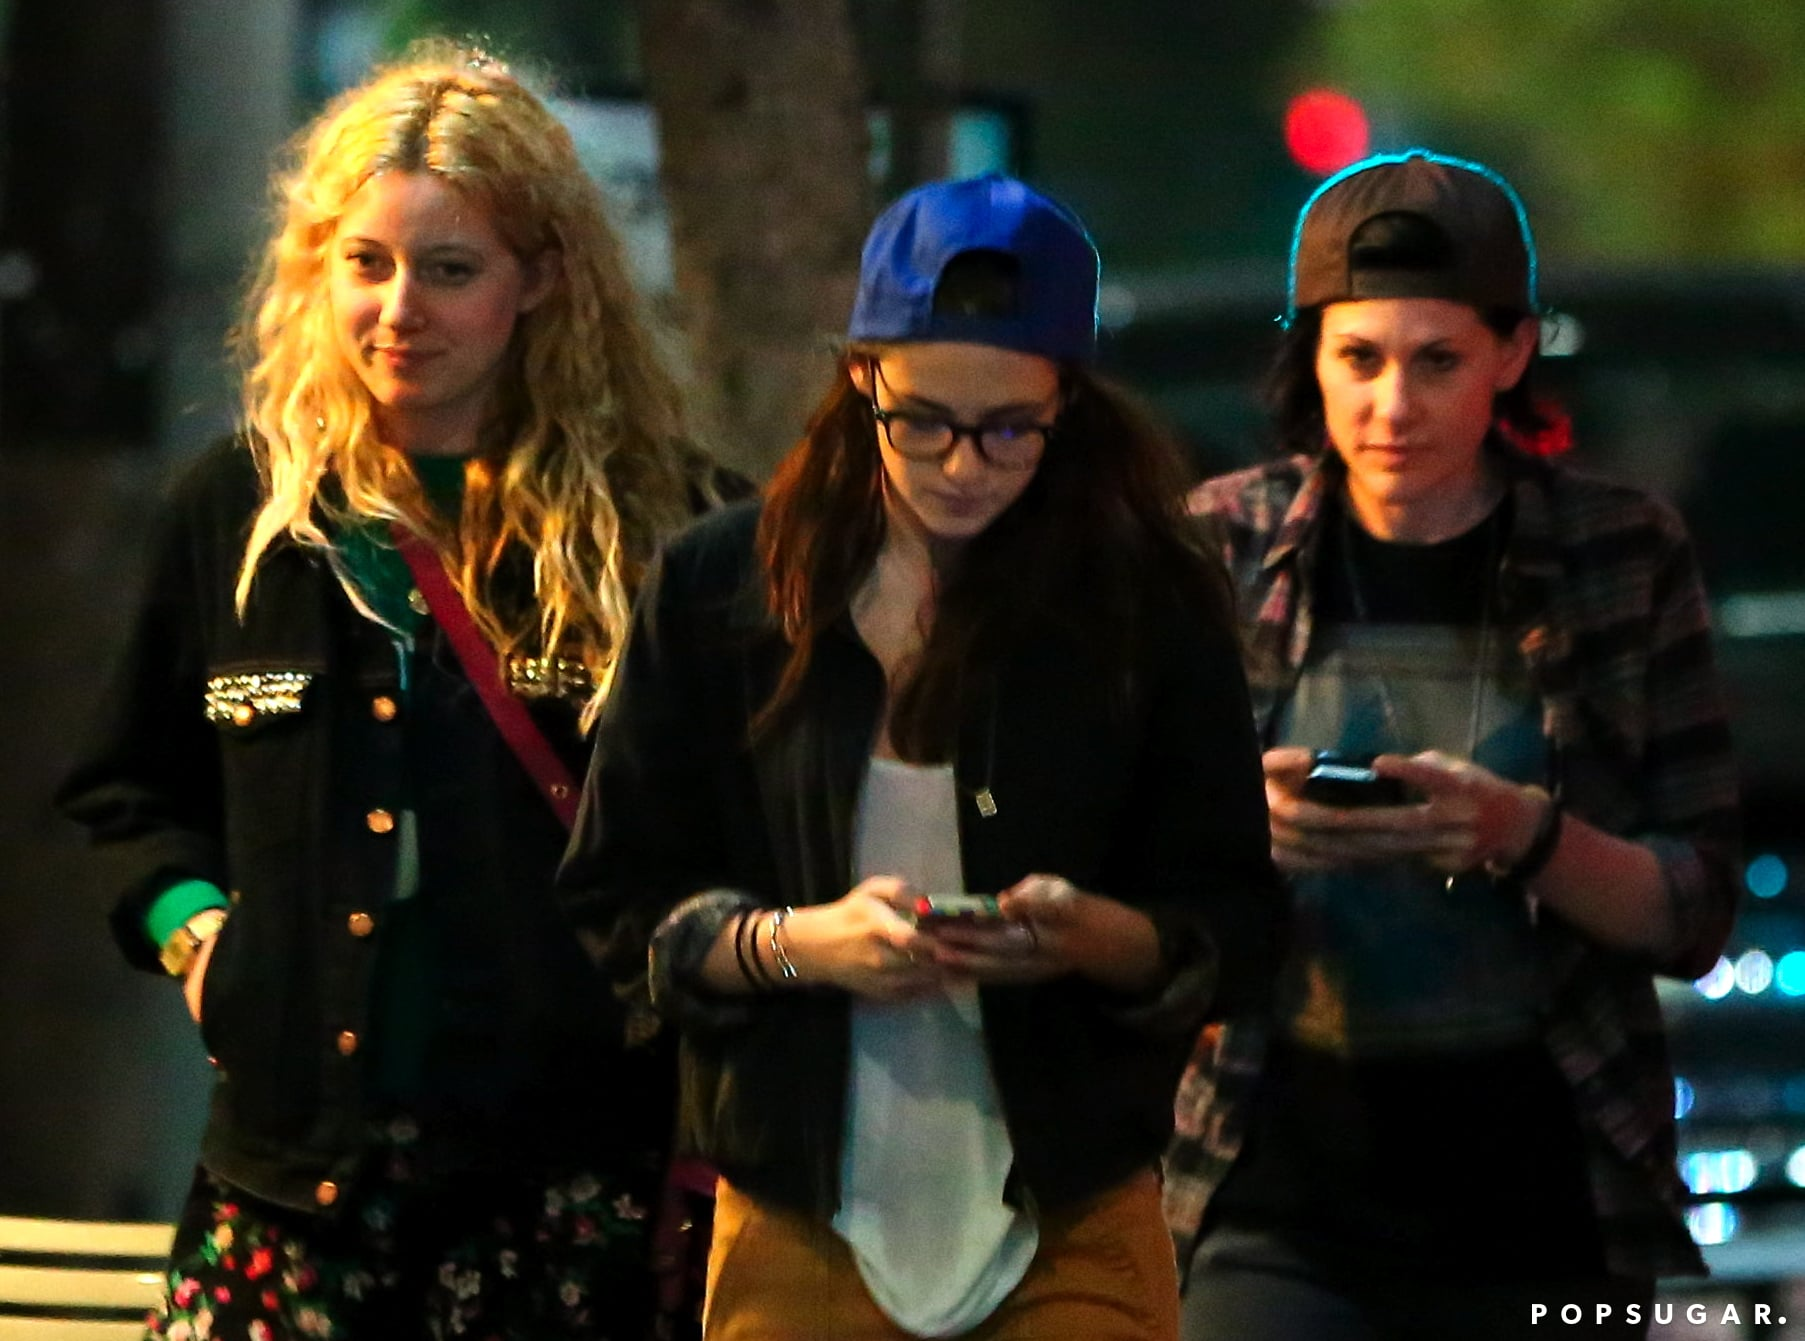 Kristen Stewart grabbed sushi with friends.